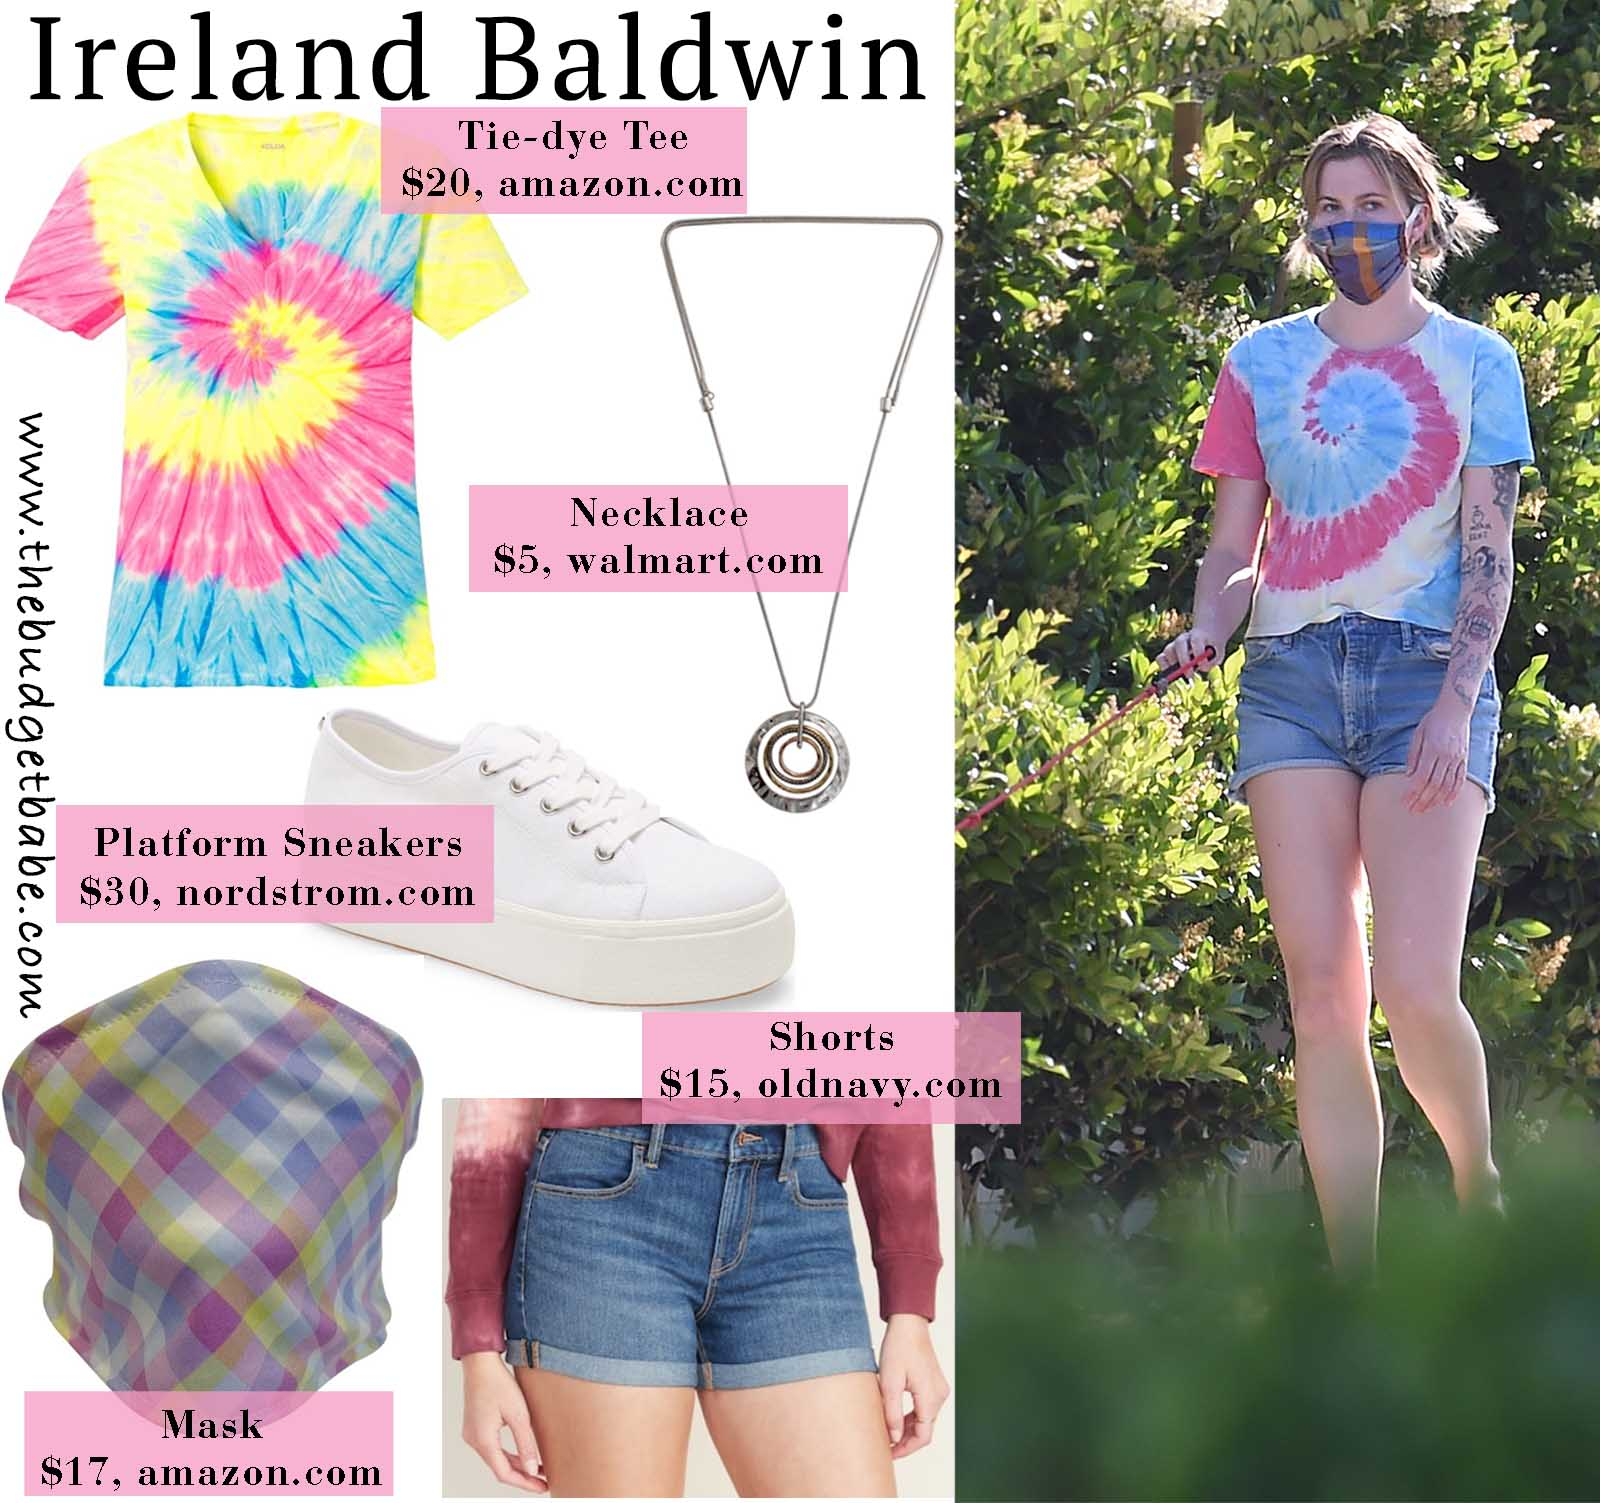 Ireland Baldwin rocks a tiedye shirt that we love!